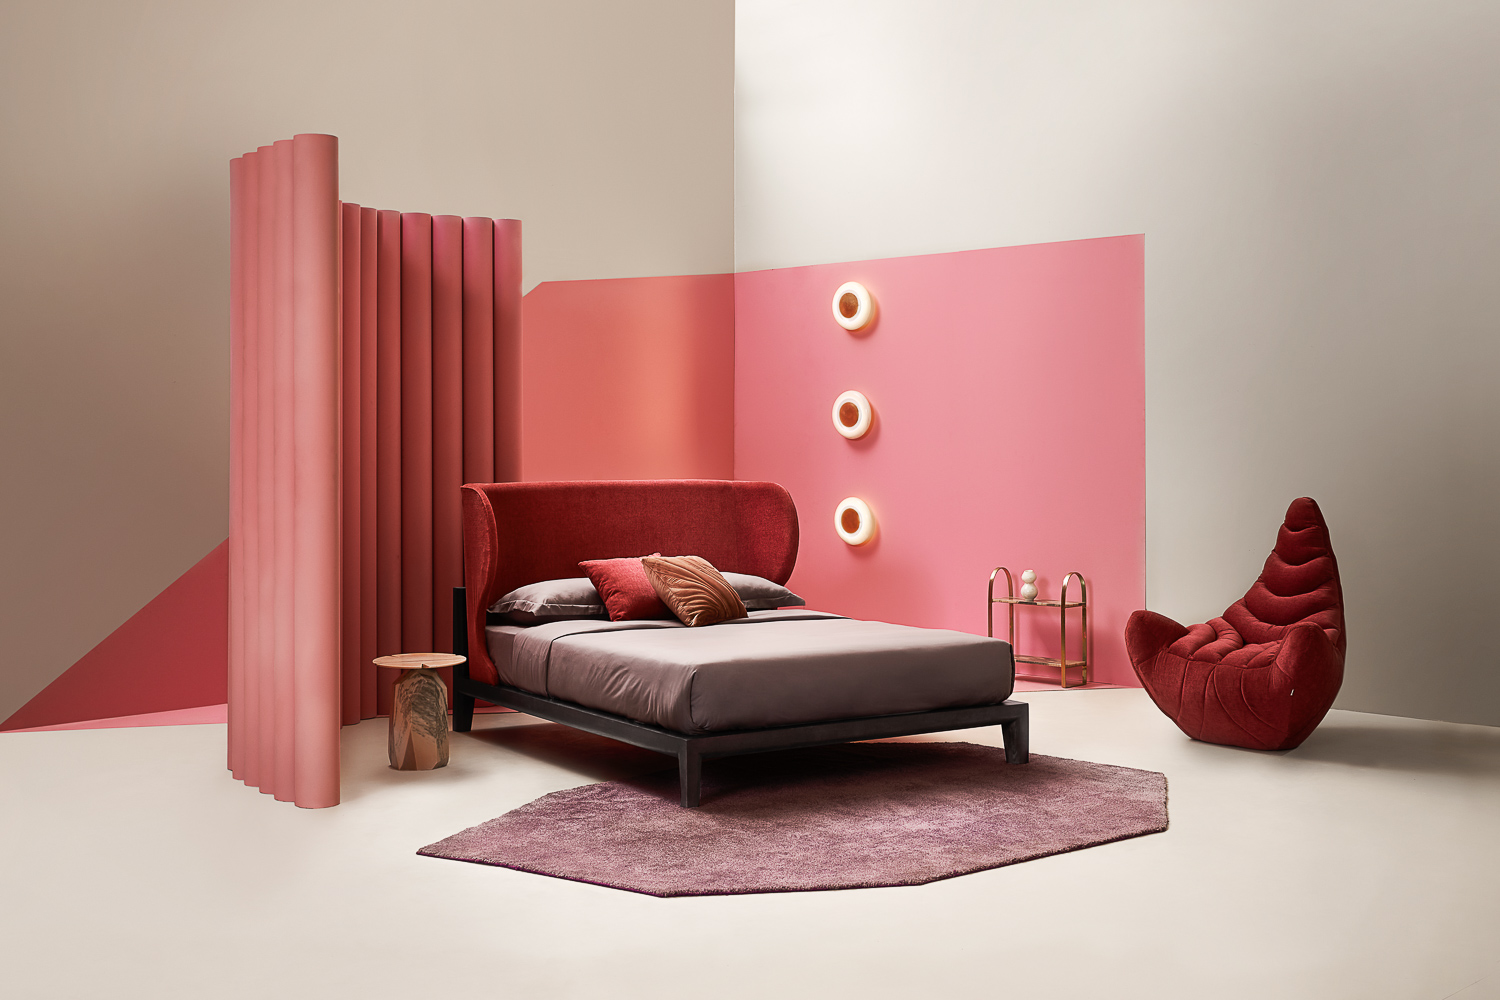 studiohaus all'Asia Design Milano asia design milano MILANO DESIGN WEEK 2019: COS'È ASIA DESIGN MILANO? KOY 45